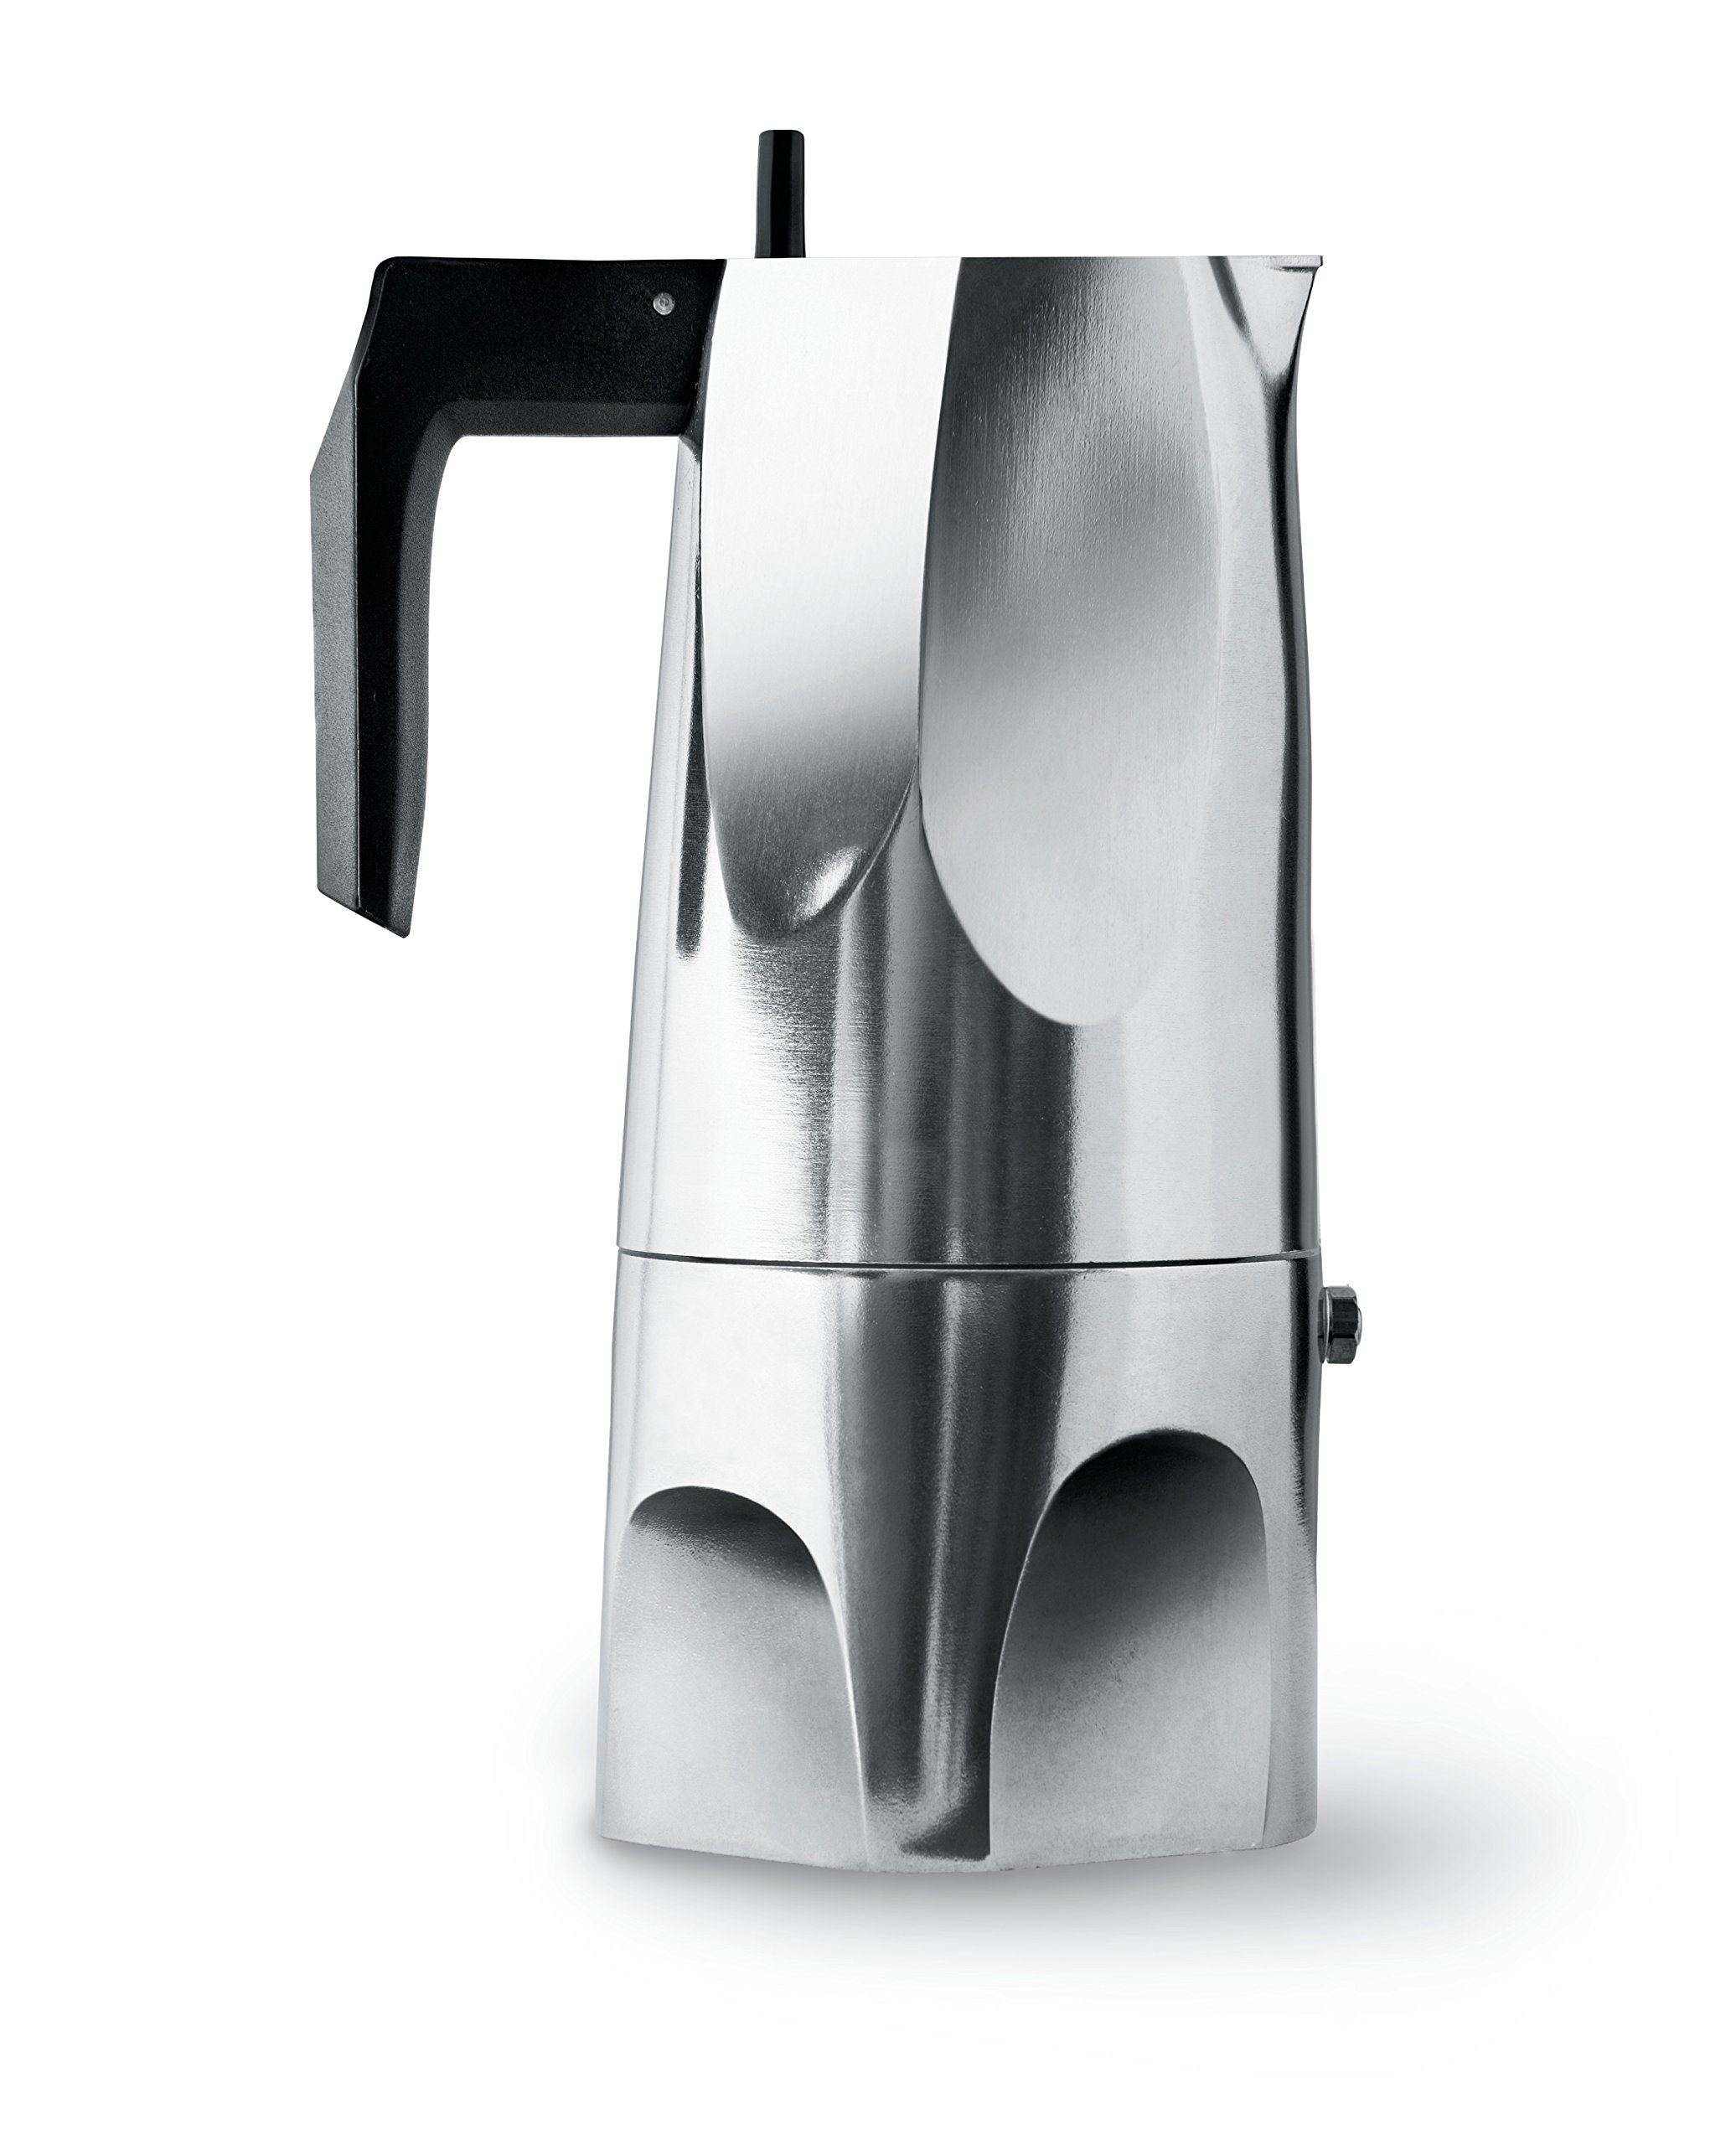 Alessi MT18/6''Ossidiana'' Stove Top Espresso 6 Cup Coffee Maker in Aluminium Casting Handle And Knob in Thermoplastic Resin, Black by Alessi